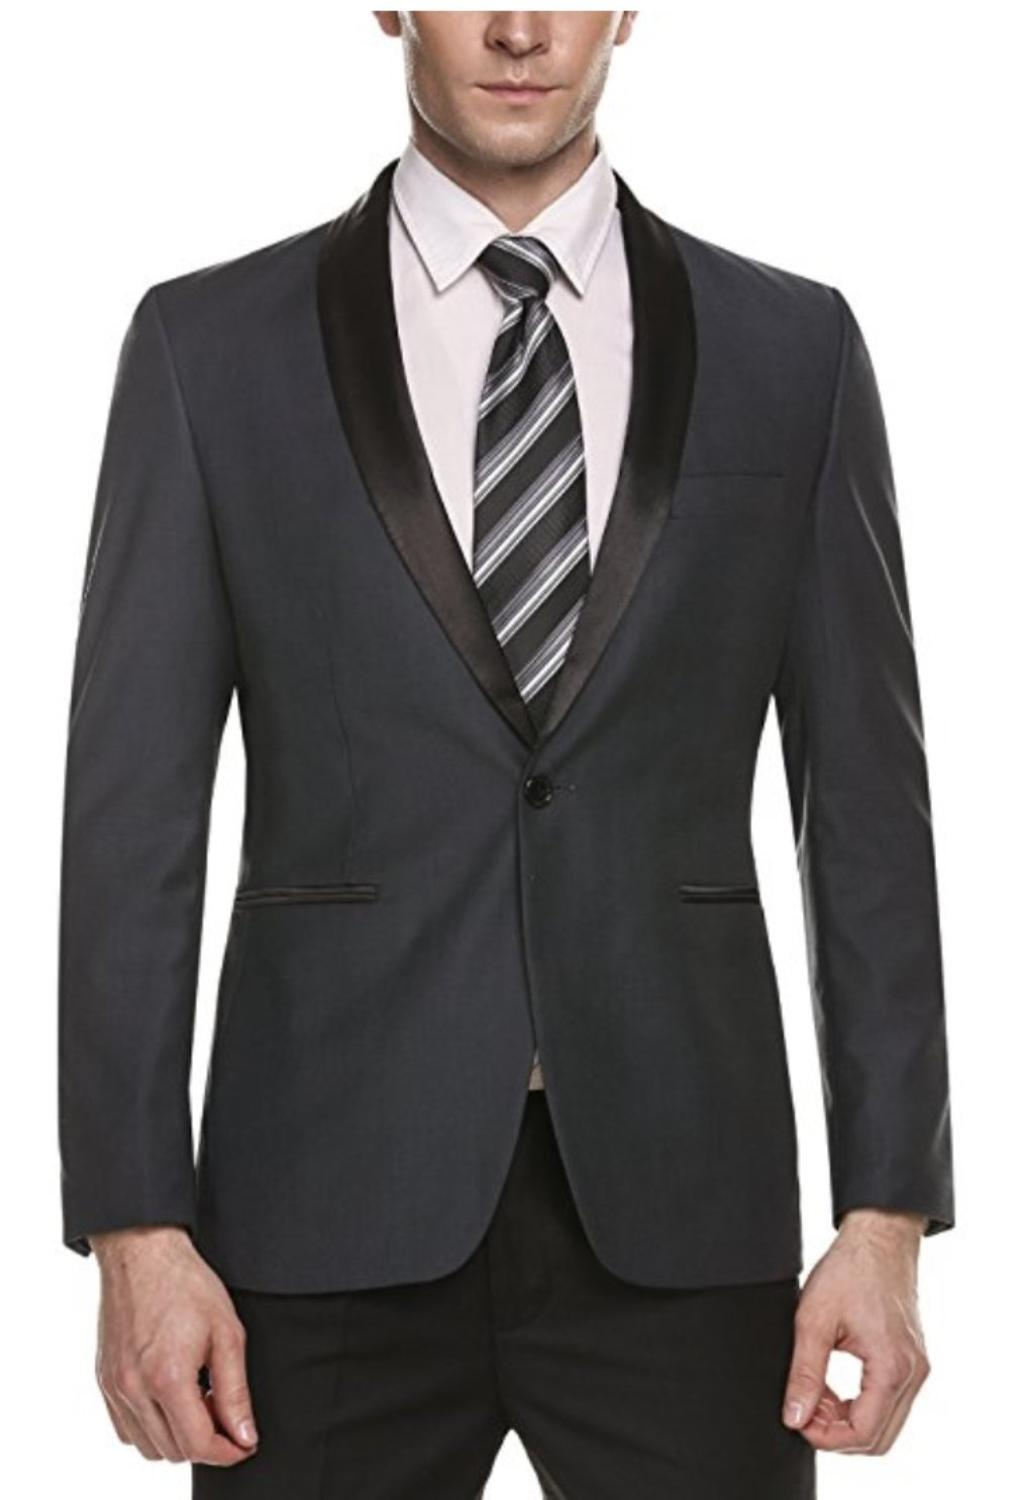 Men's Slim Fit Stylish Casual One-Button Suit Coat Jacket Business Blazers For Casual Business Formal Occasions Wedding Party